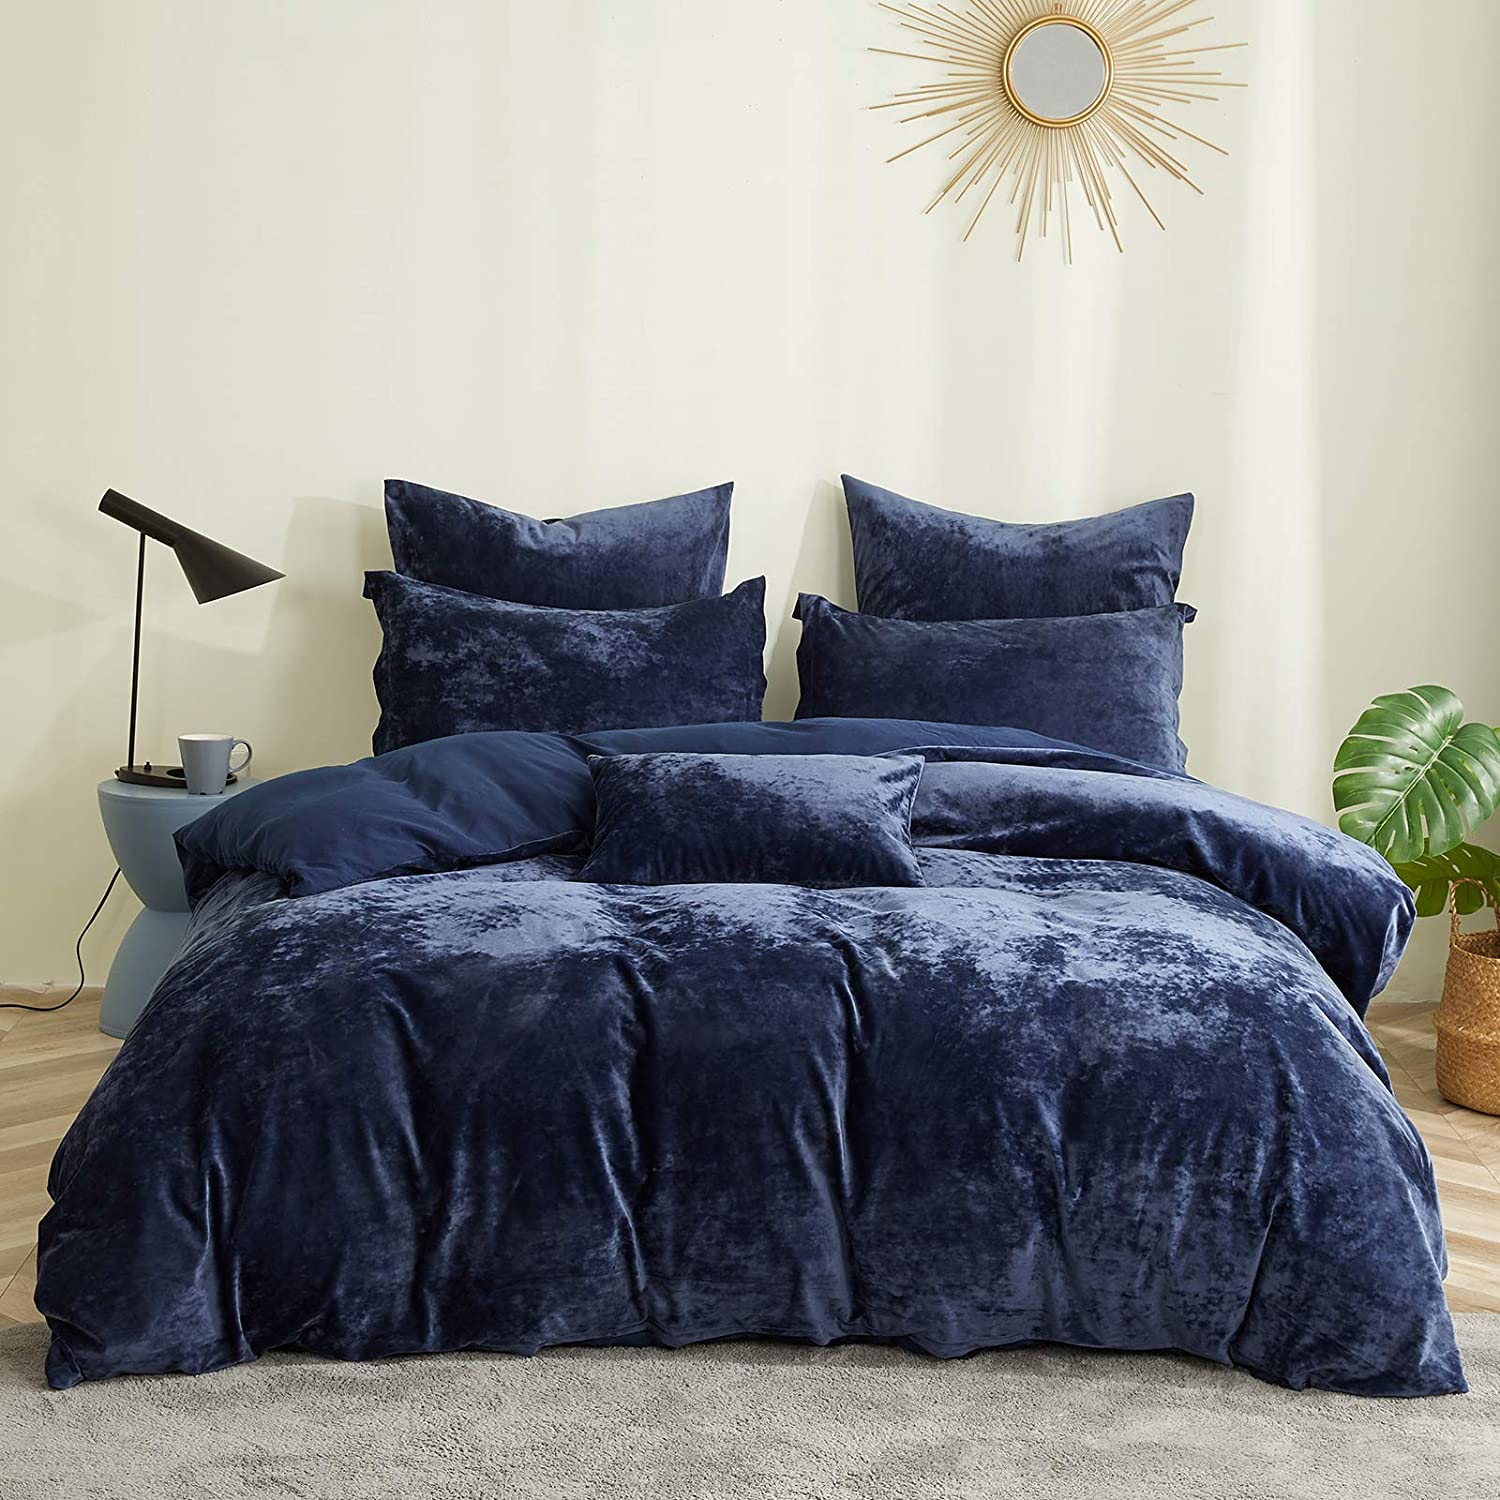 """David's Home Heavyweight Velvet Duvet Cover Set King Size - 3 PCS - Soft, Warm, Solid and Luxurious Bedding Set with Corner Ties, Button Closure - 106"""" x 92"""" , Navy Blue"""